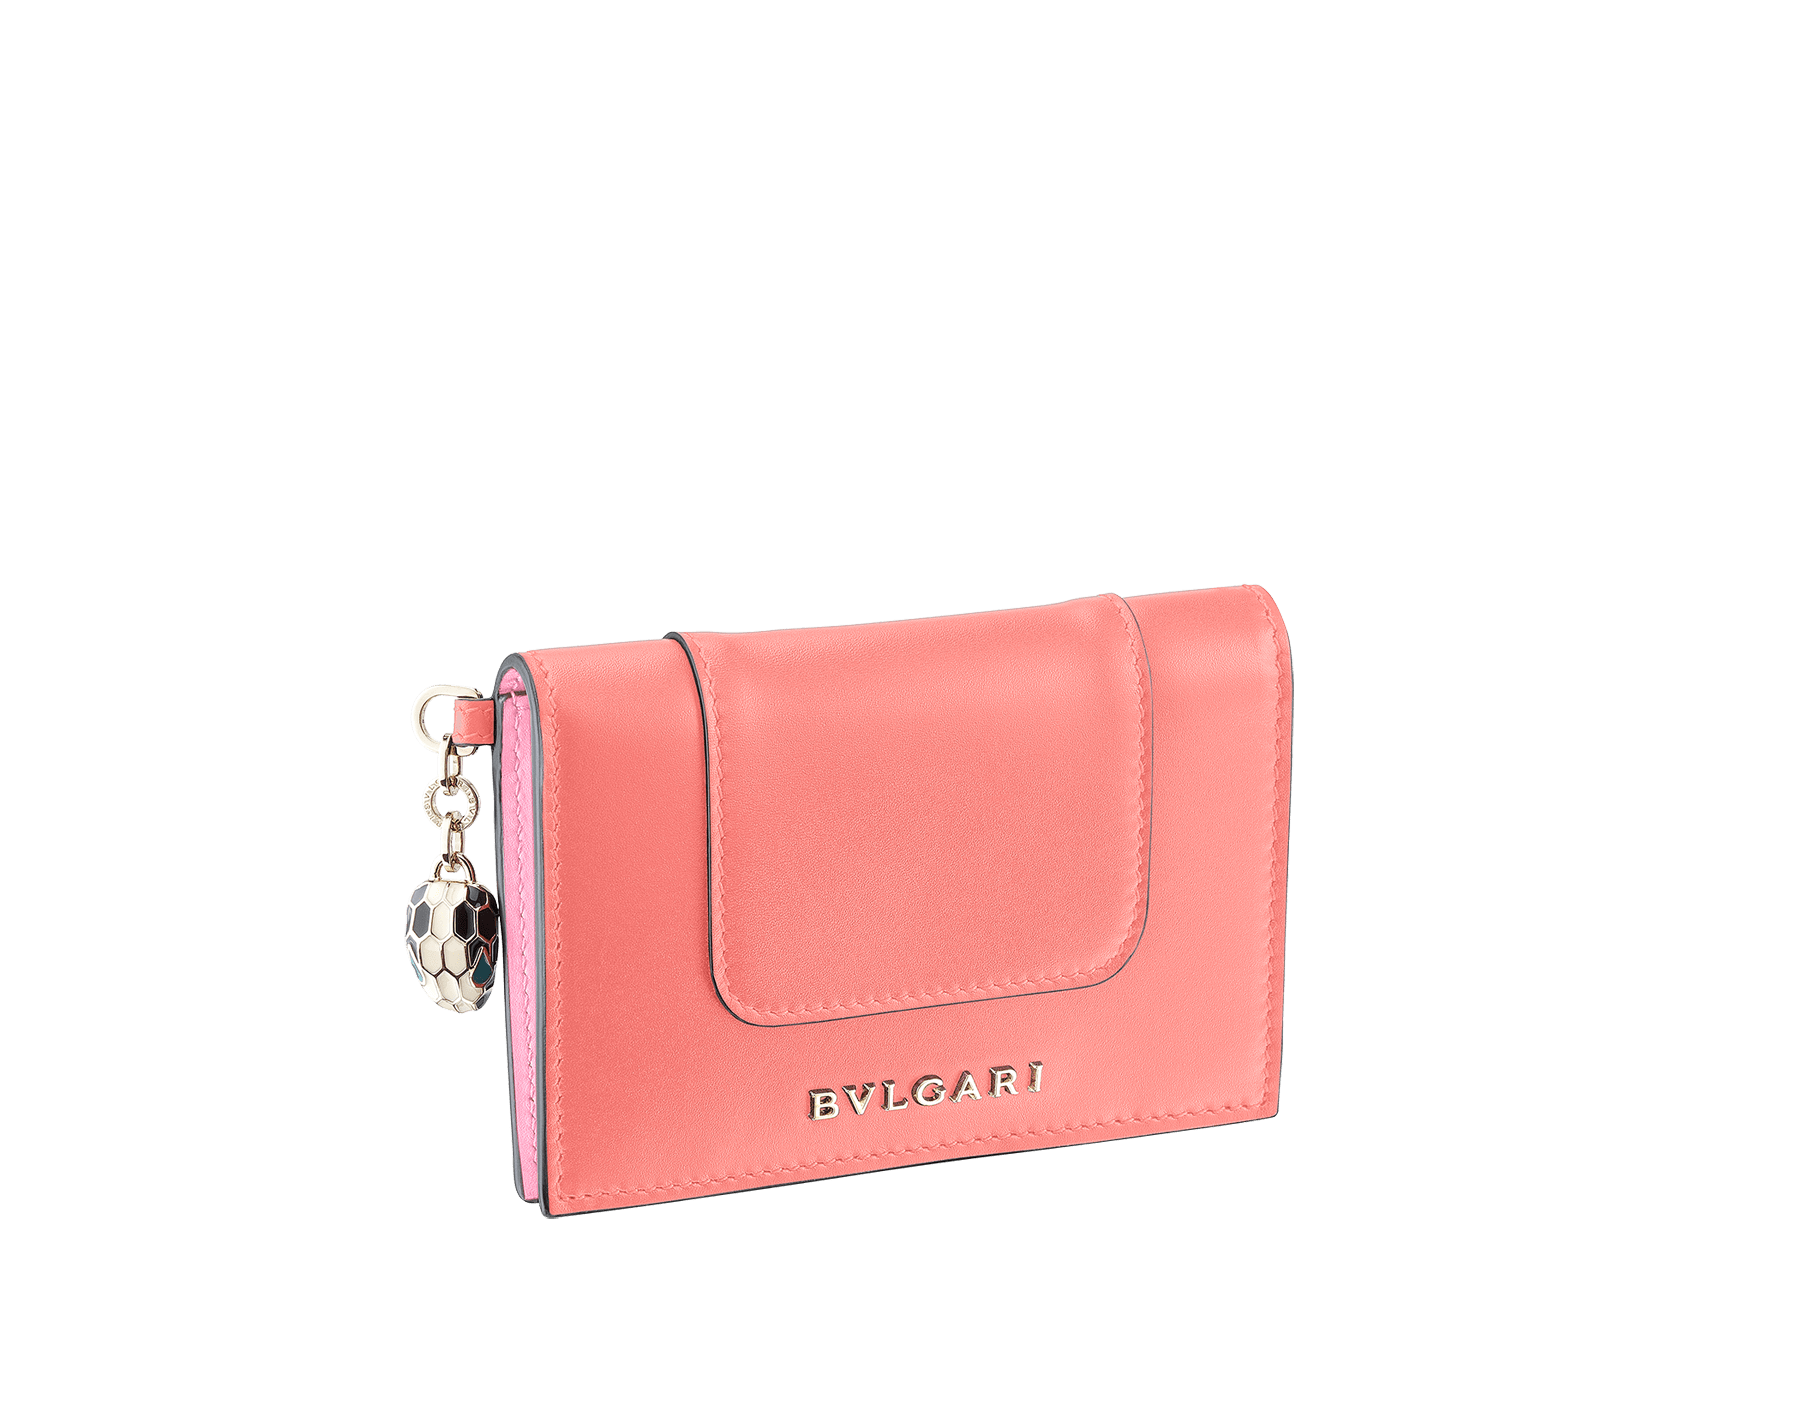 Serpenti Forever folded credit card holder in silky coral and flamingo quartz calf leather. Iconic snakehead charm in black and white enamel, with green malachite enamel eyes. 288823 image 1